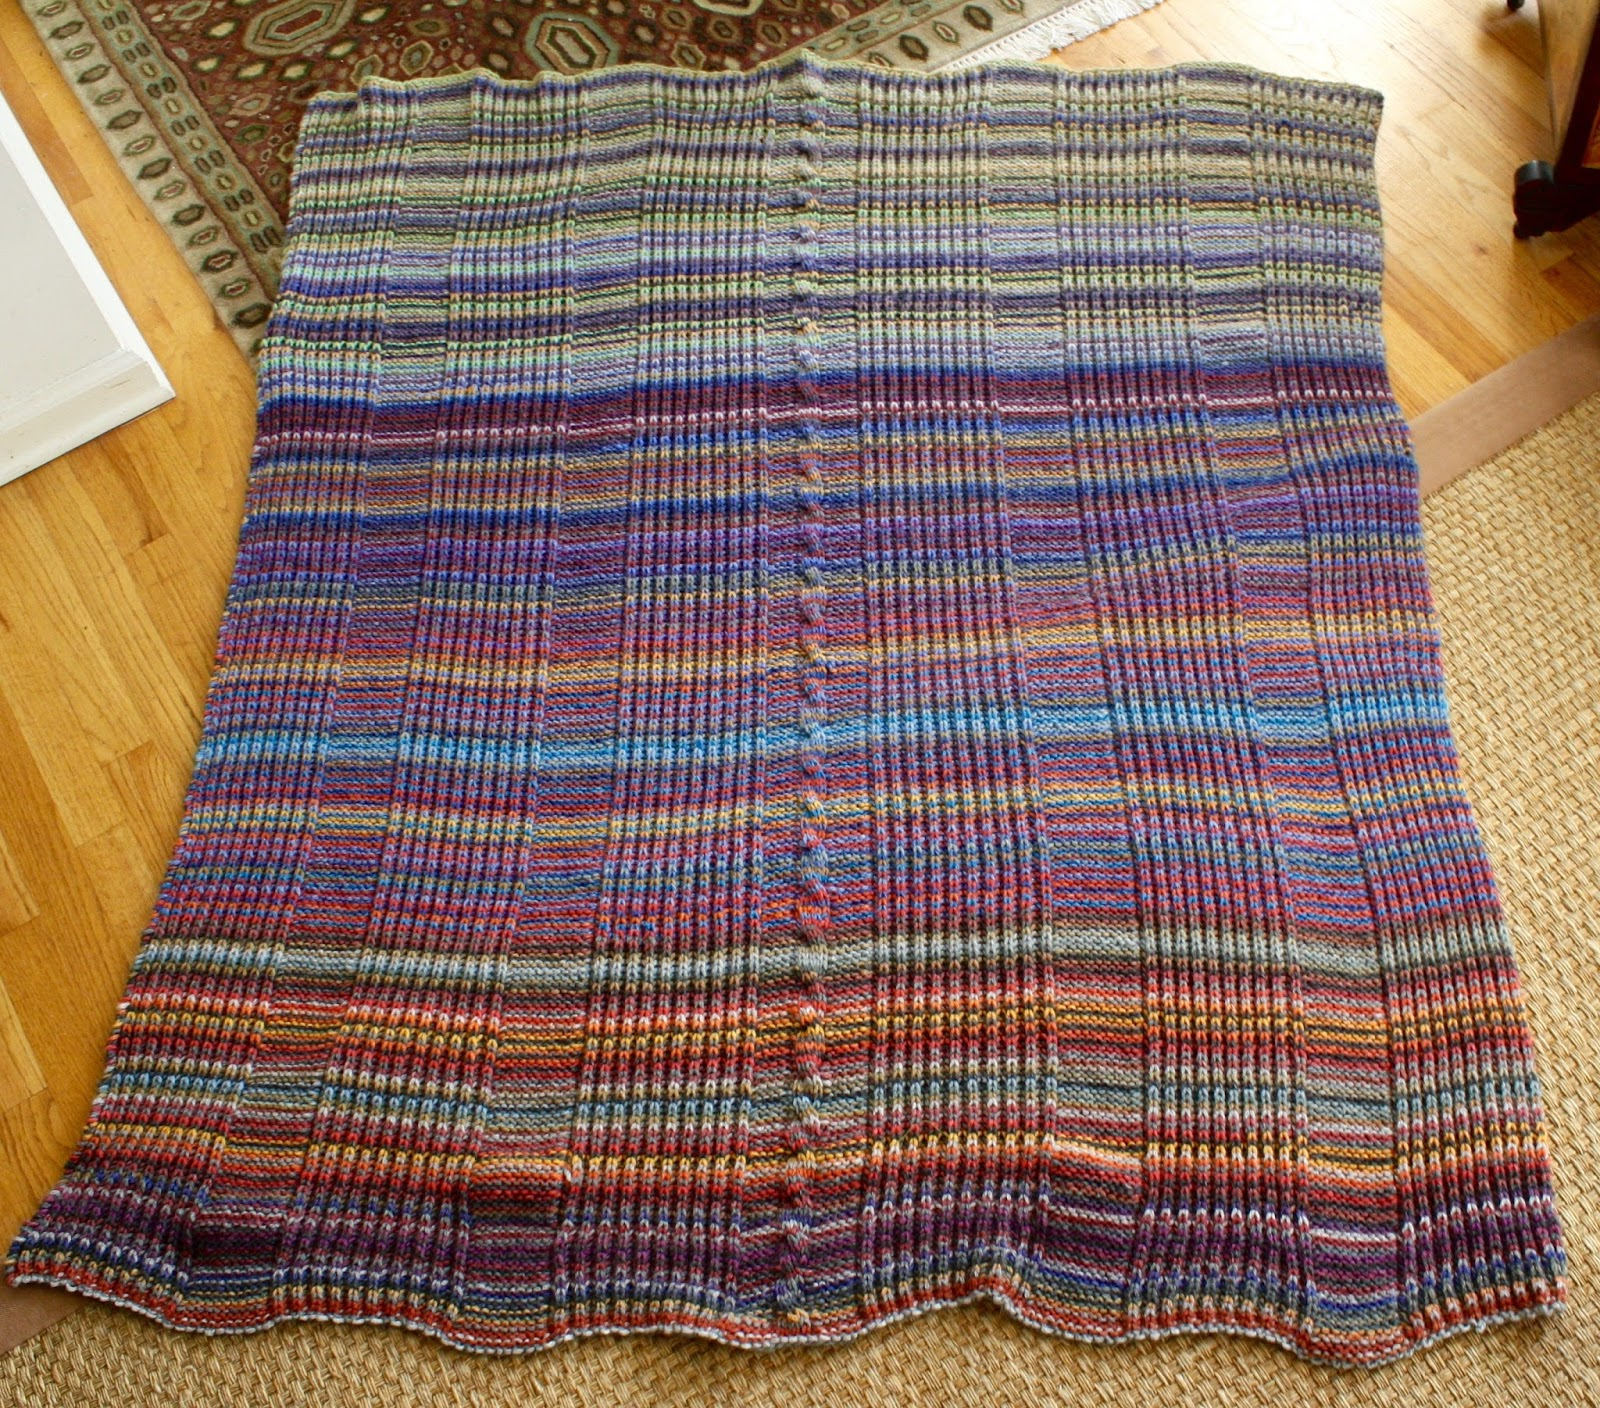 Queerjoes knitting blog 06012015 07012015 i was able to finish the niece blanketdi even wrote up the pattern and test knitted it glad i did had quite a few errors in the first draft bankloansurffo Image collections